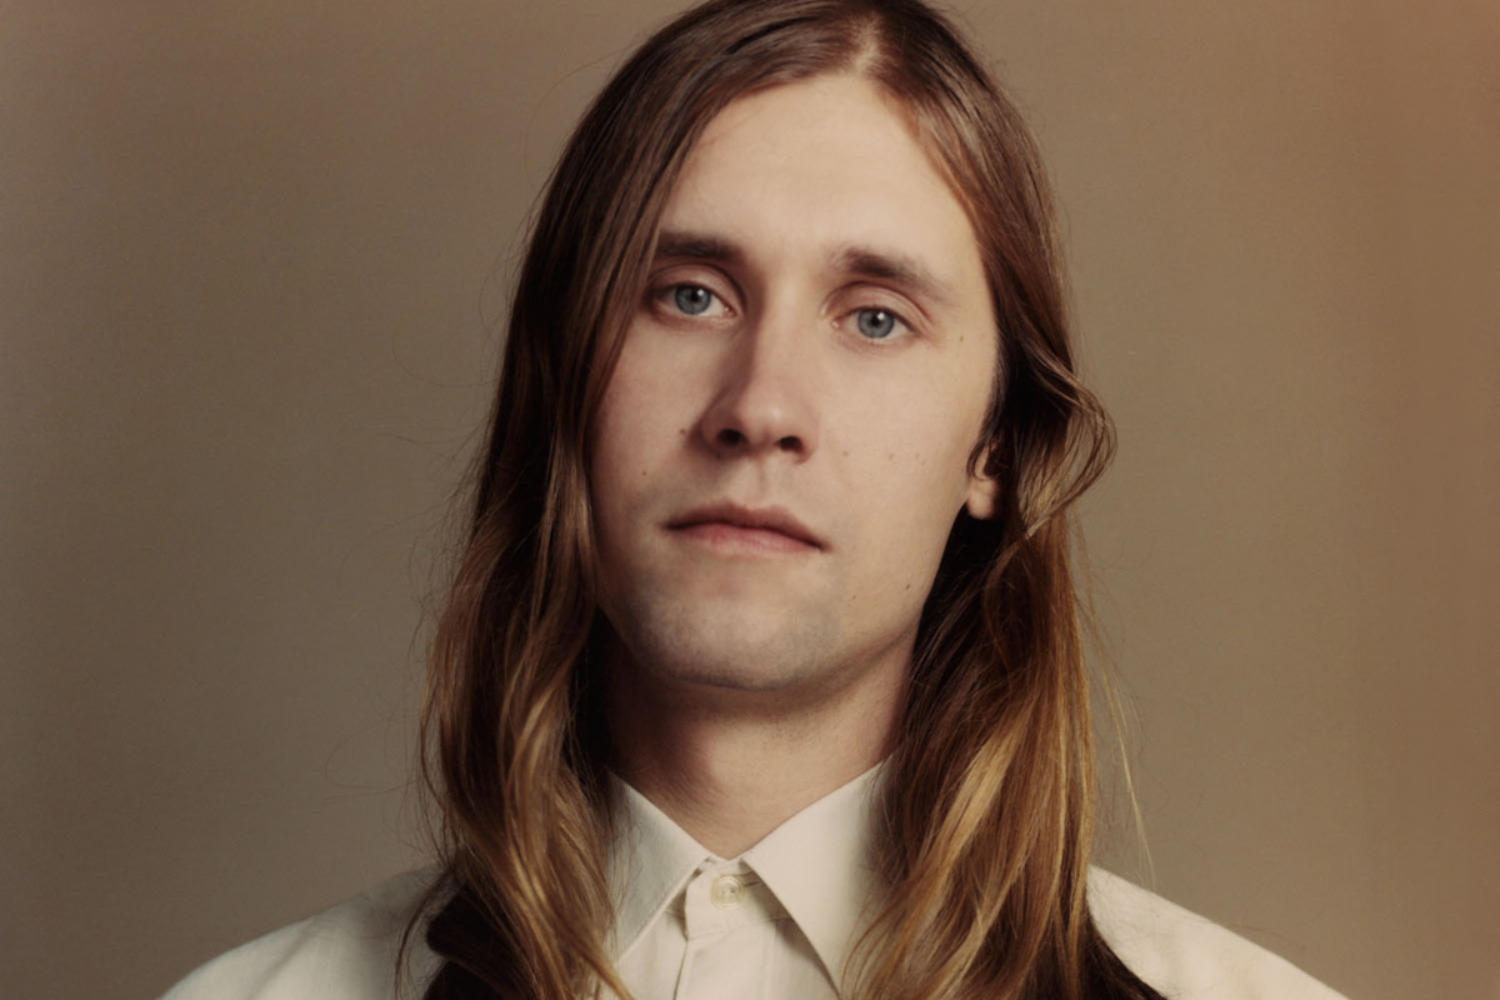 Dance for the head and feet: Jaakko Eino Kalevi